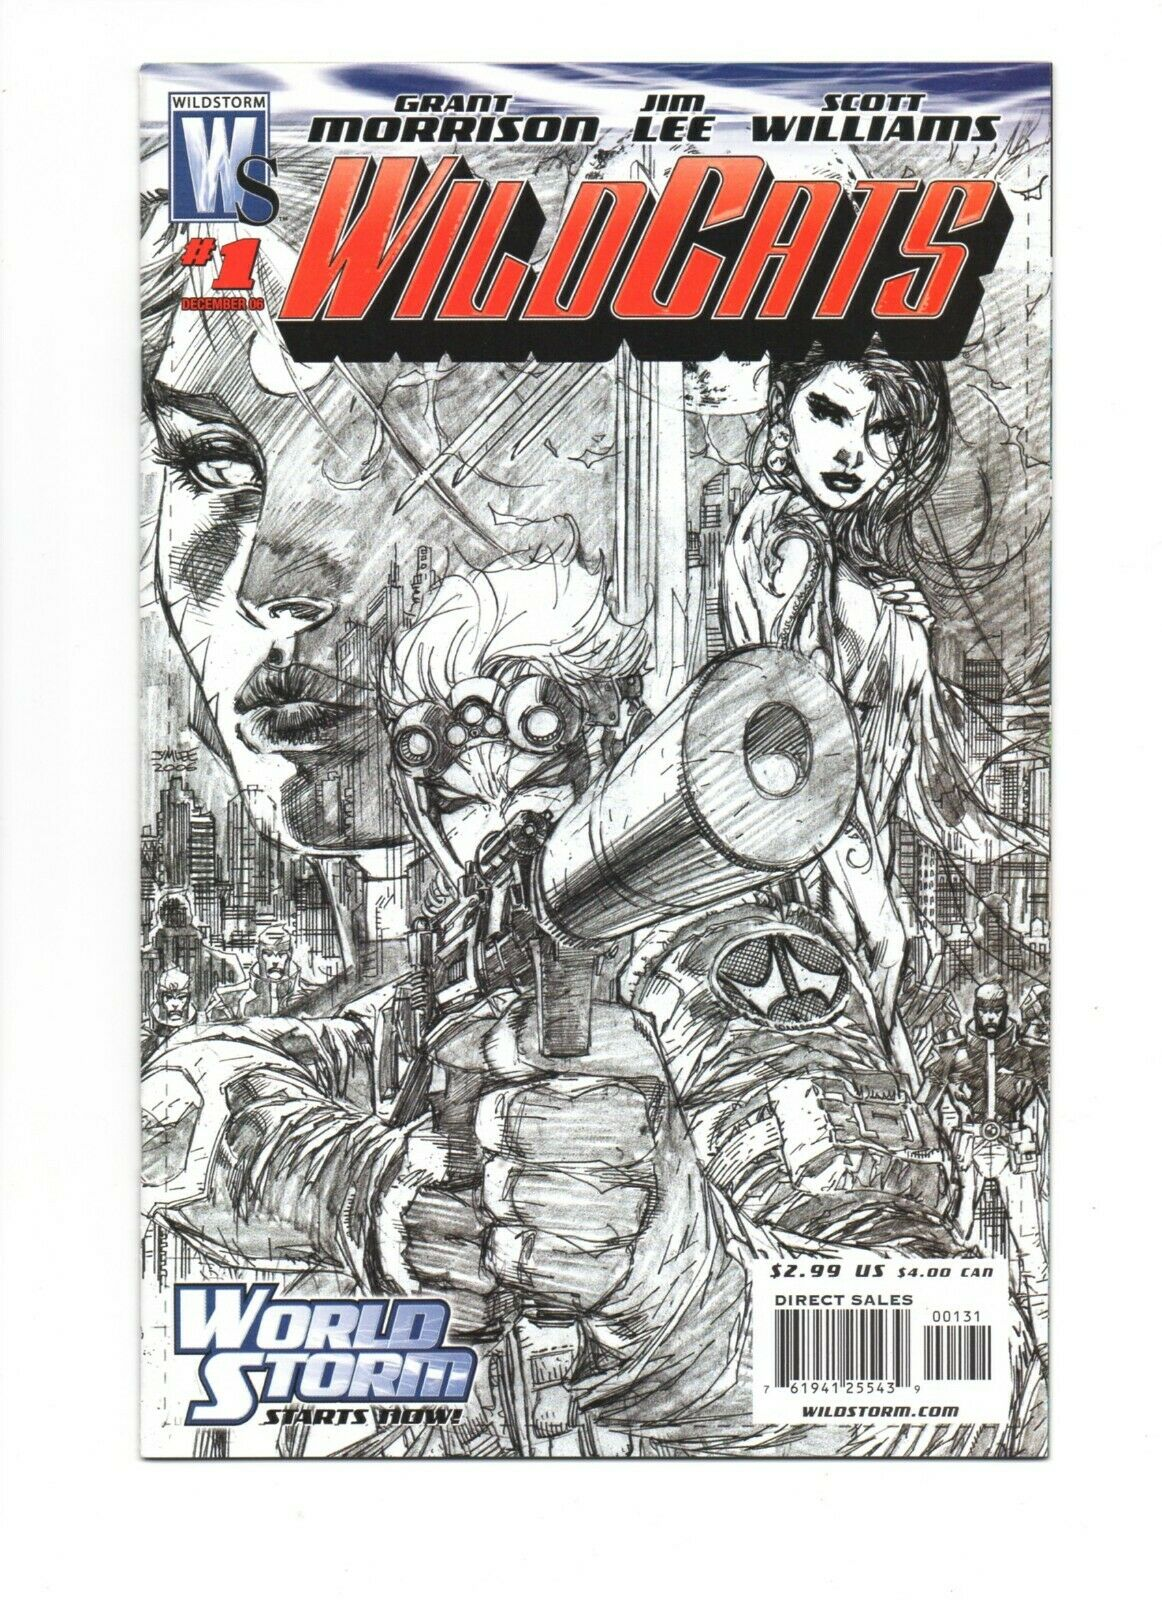 Wildcats 1 1 50 Jim Lee Sketch Variant High Grade Wildstorm 2006 - $10.50